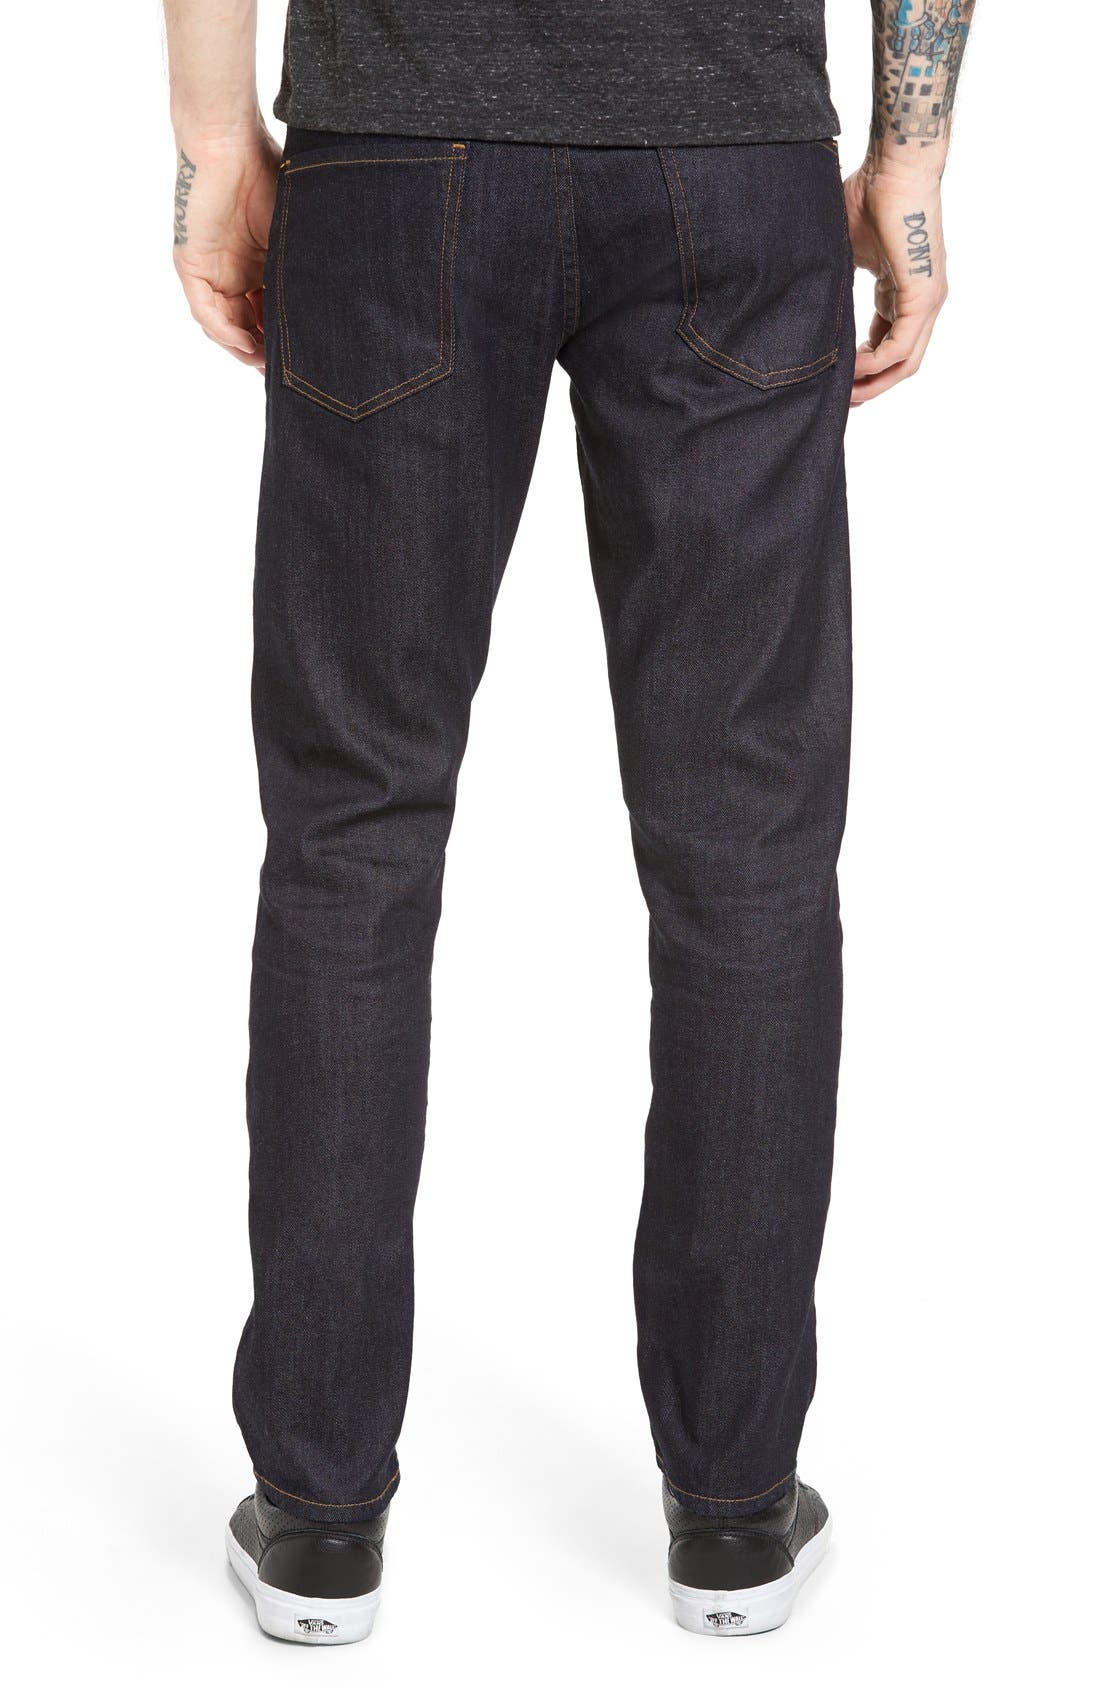 Bowery Slim Fit Jeans,                             Alternate thumbnail 11, color,                             432